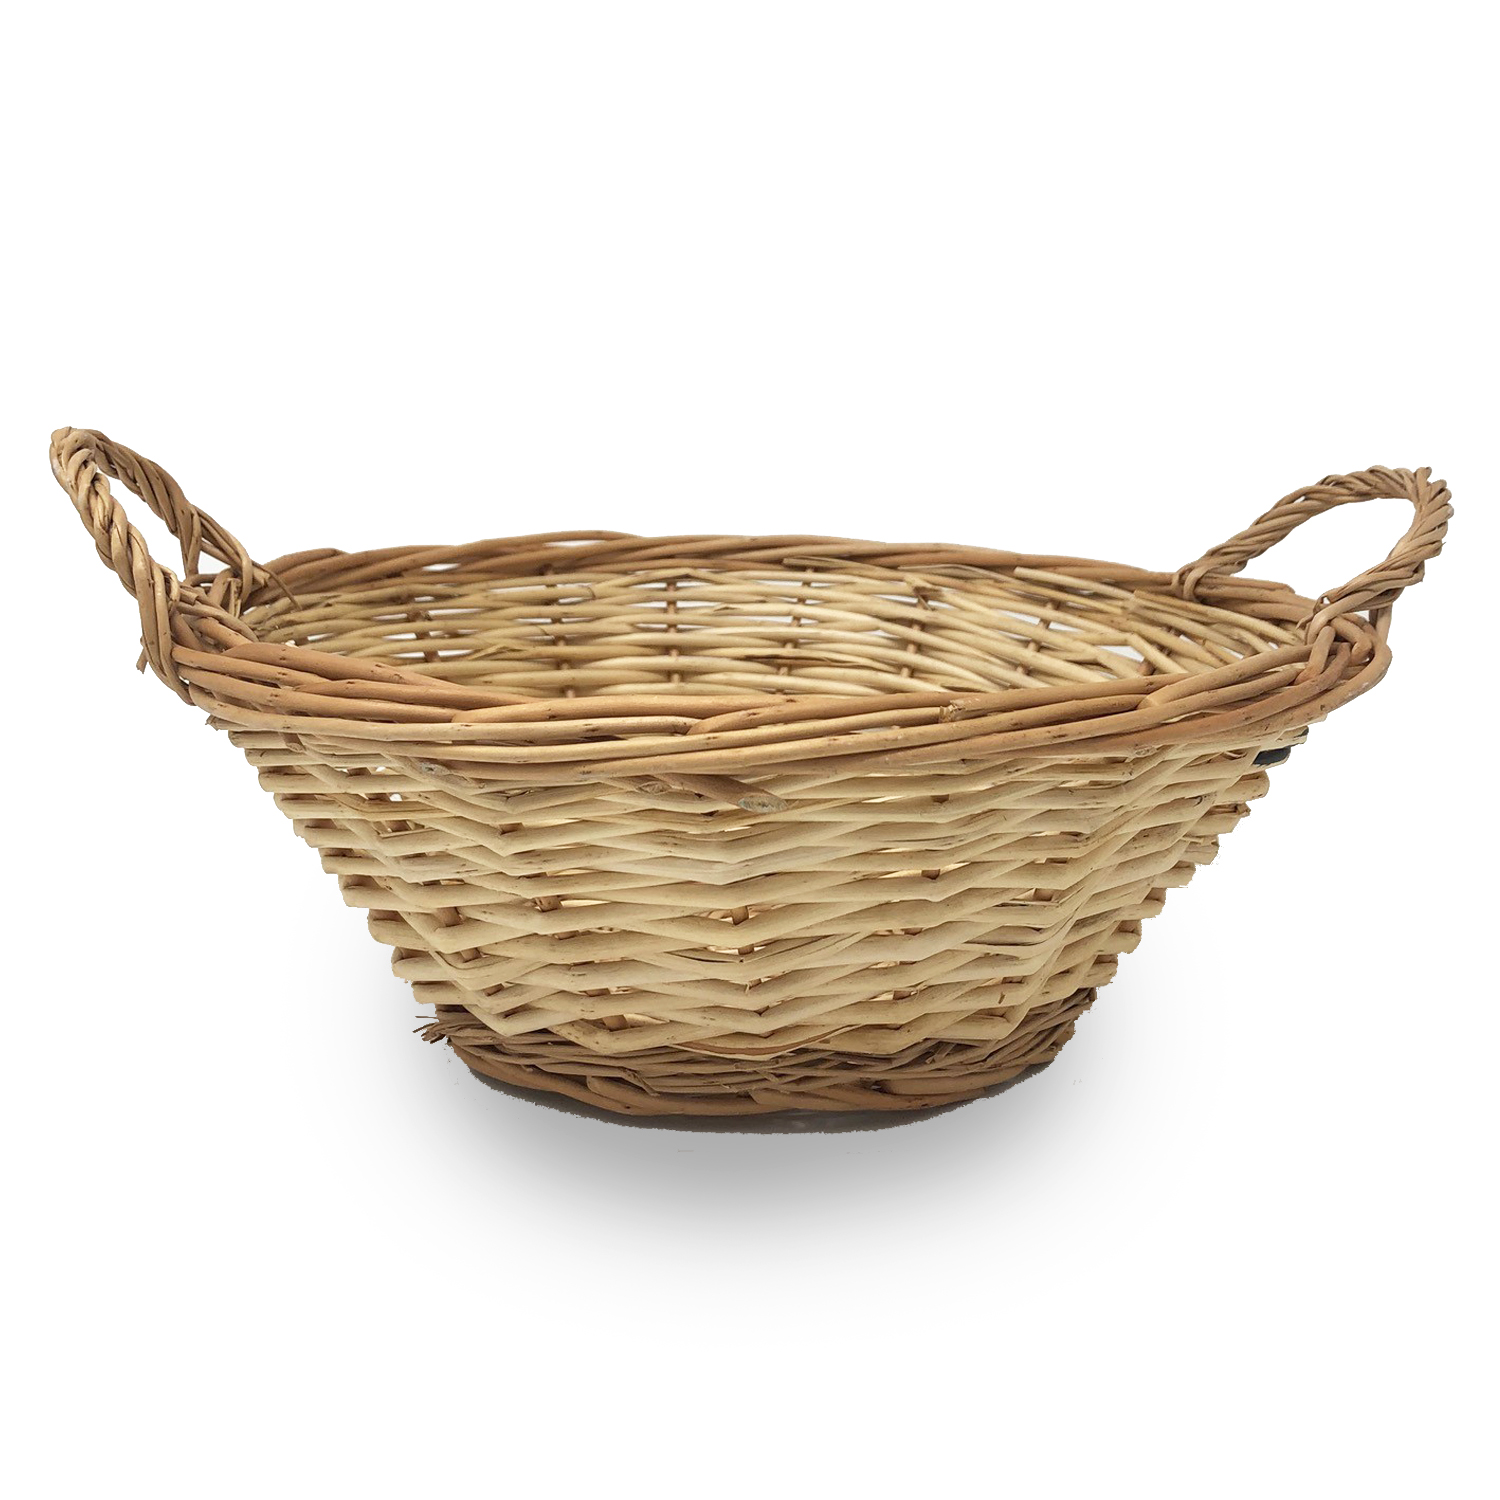 Natural Round Tray Basket - Medium 10in